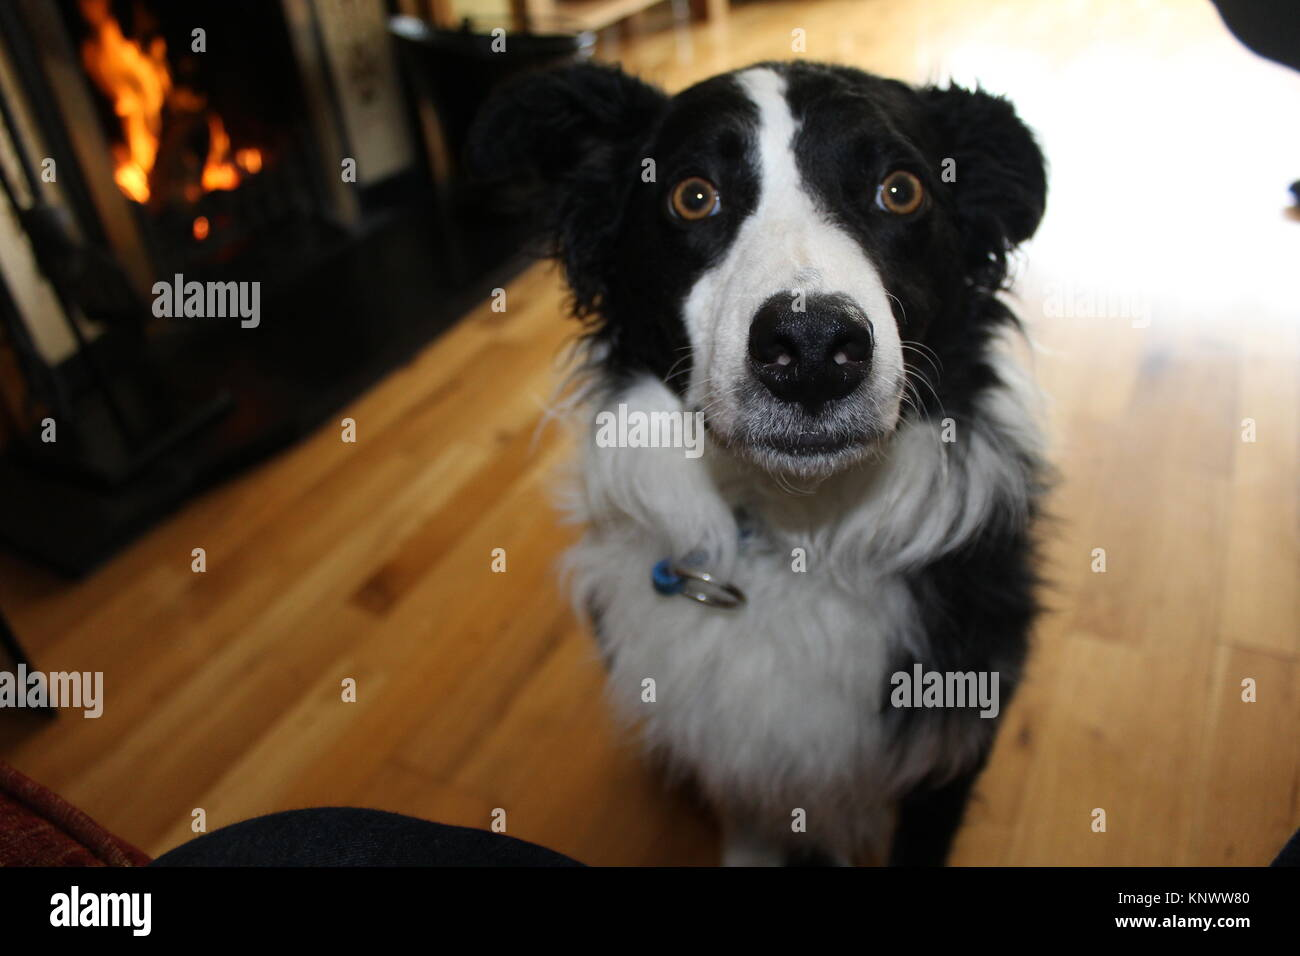 Border Collie by the Fire - Stock Image